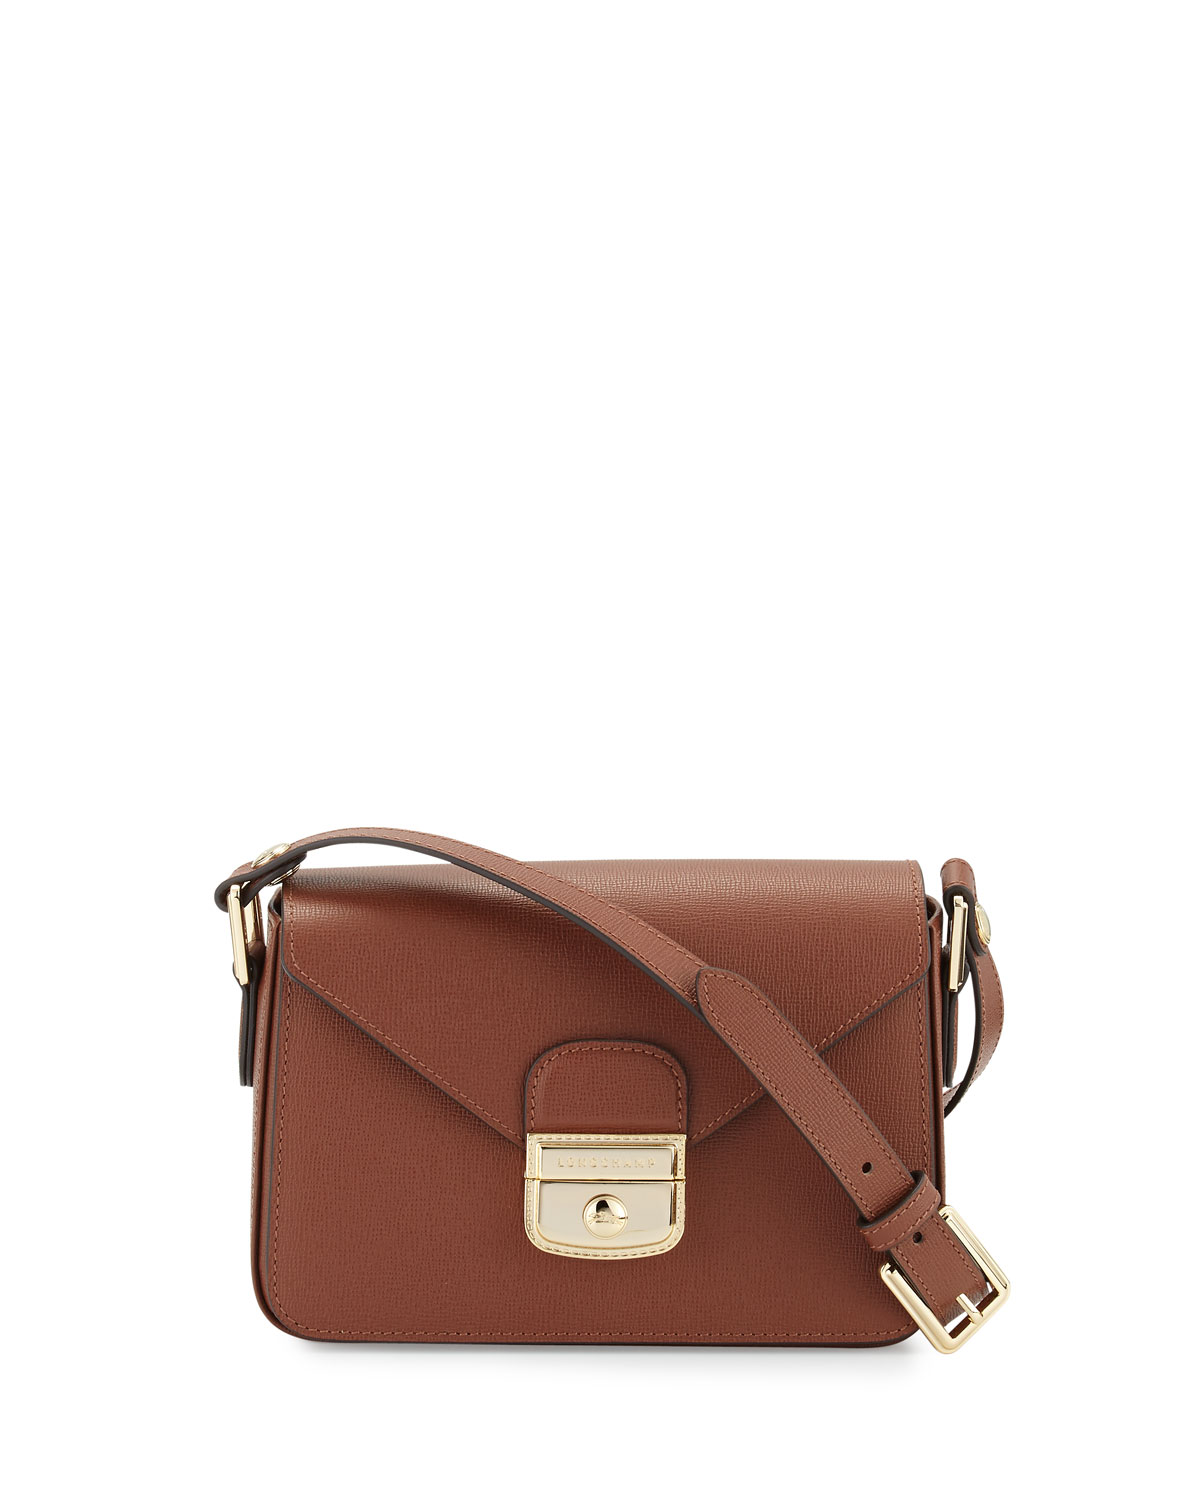 b6c65872a65e Longchamp Le Pliage Heritage Small Crossbody Bag